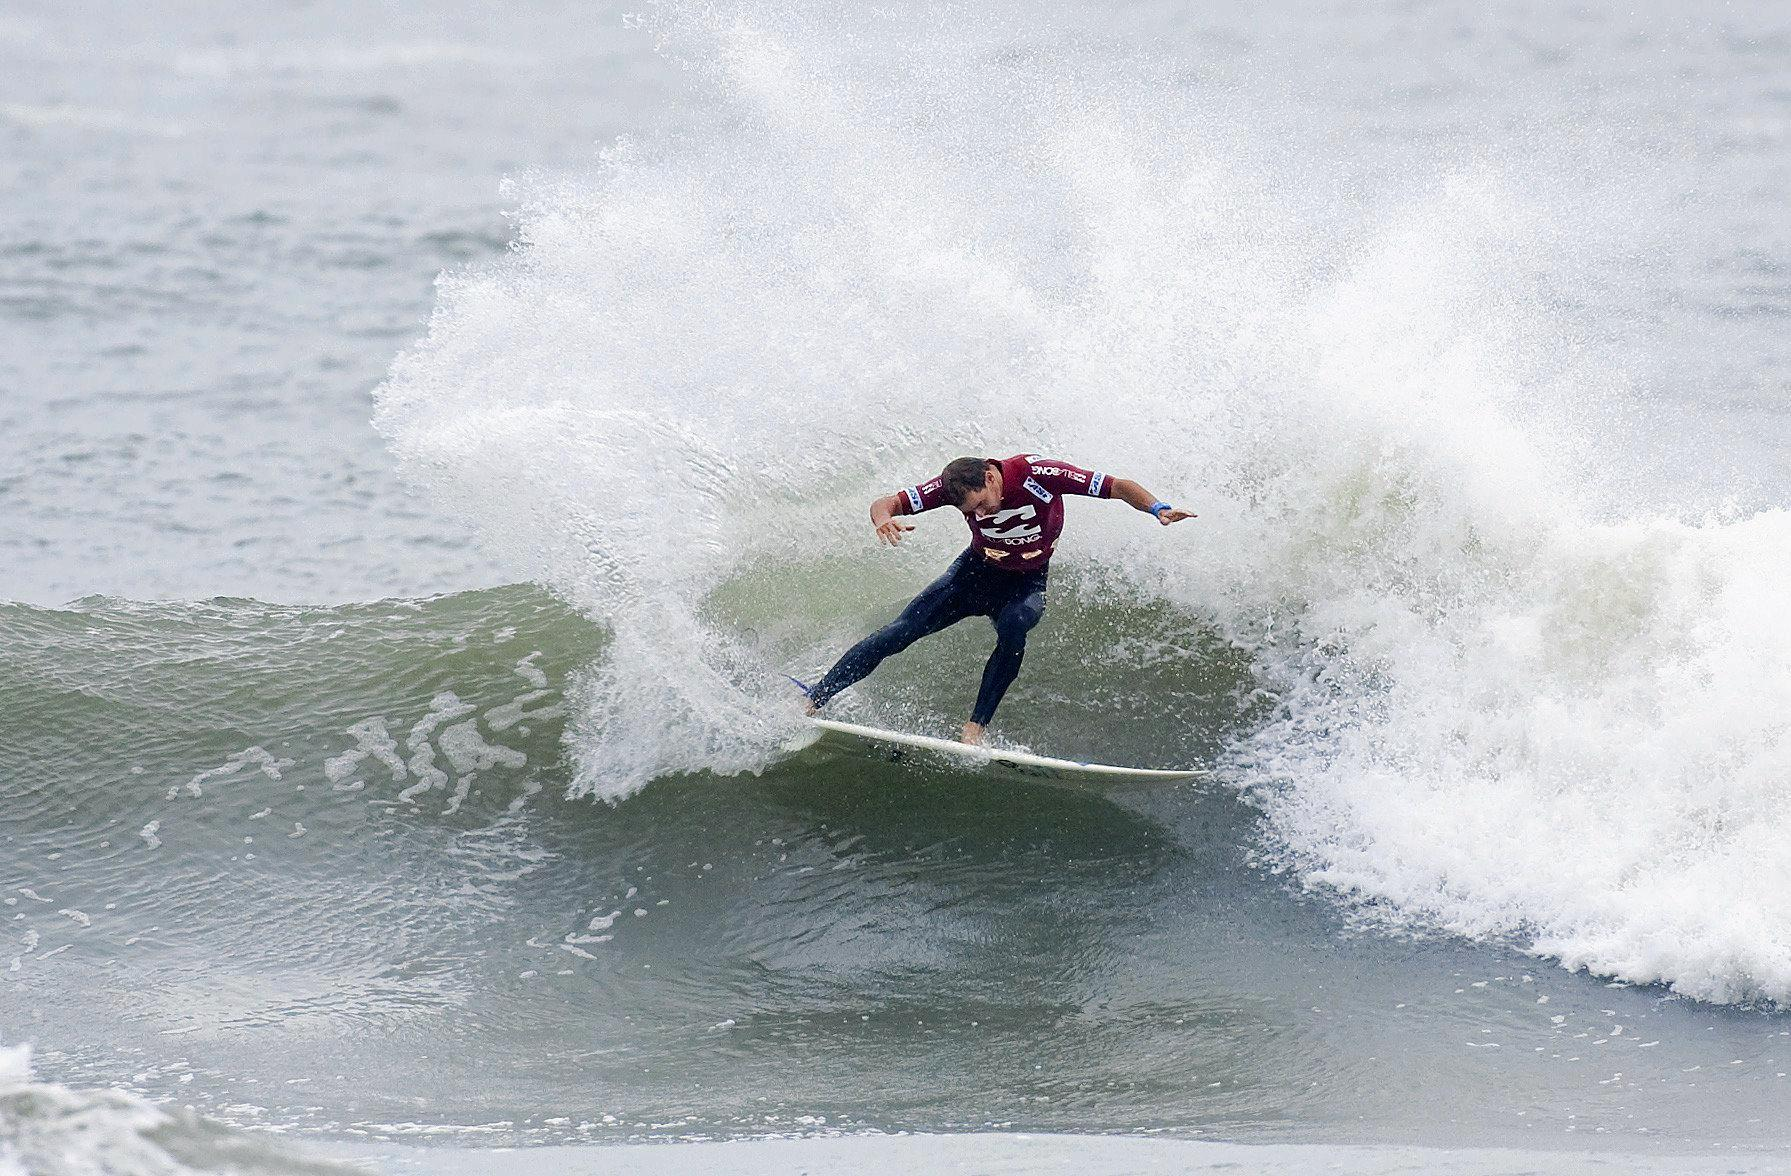 ON SHOW: Former pro surfer Dan Ross will be among the surfers taking part in the reborn Pippi Classic.